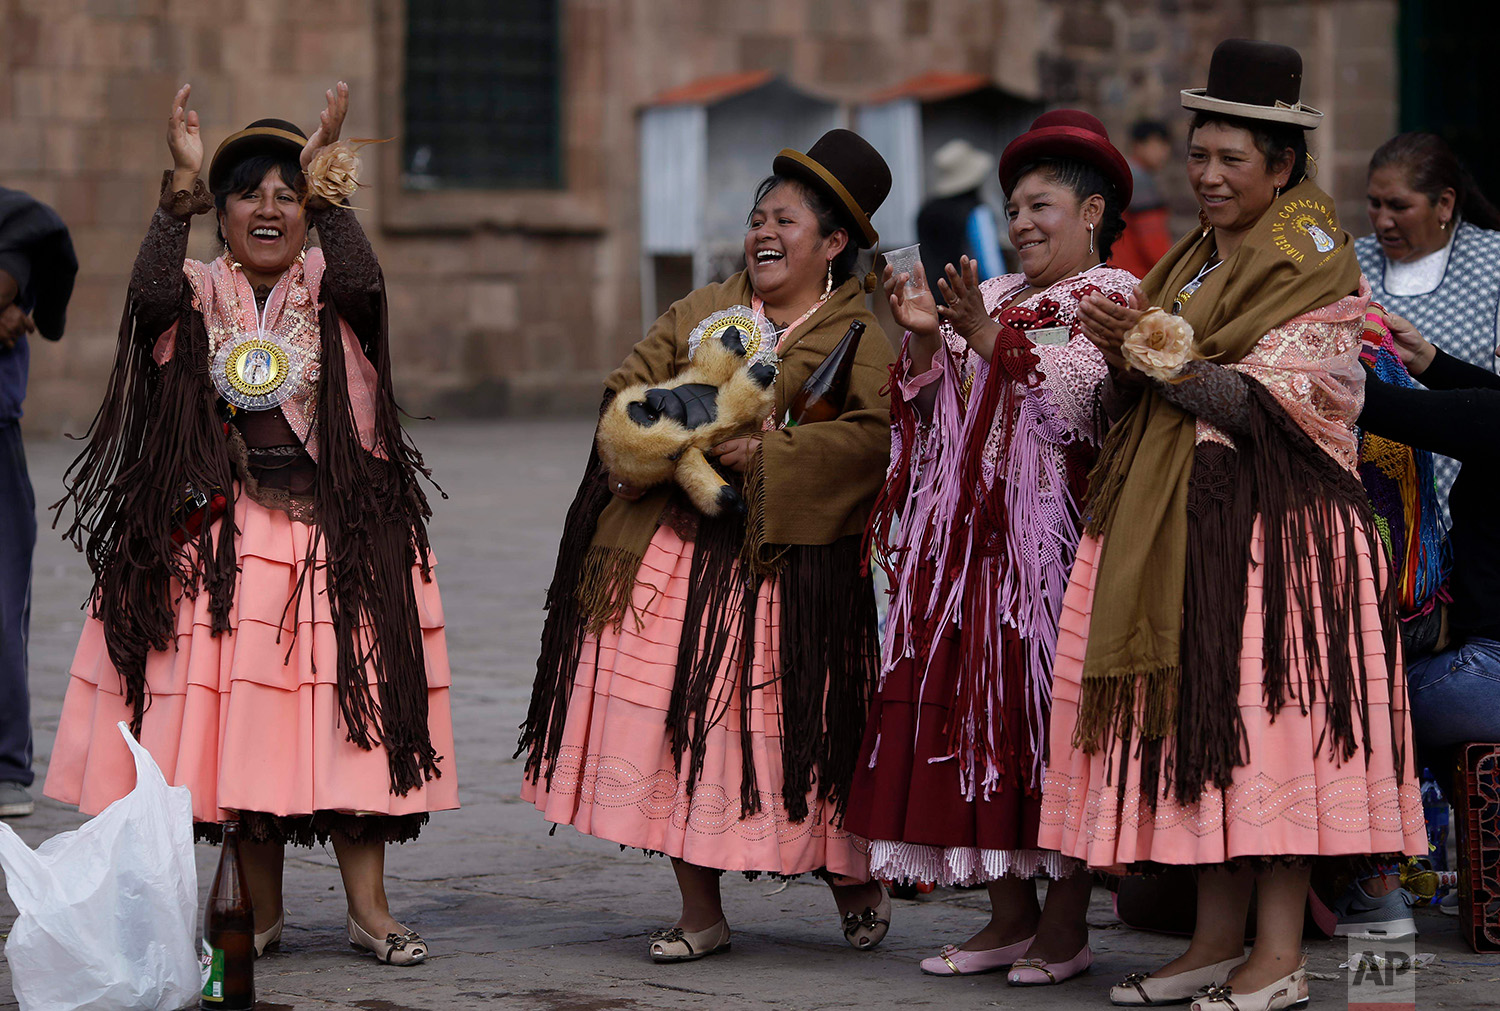 """""""Chola"""" dancers, easily identifiable by their typical Aymara dress: wide skirts, bowler hats and elaborate shawls, applaud the fancy footwork of a couple, as they take a break from their performance honoring Our Lady of Copacabana, in Cuzco, Peru, Aug. 5, 2018. (AP Photo/Martin Mejia)"""